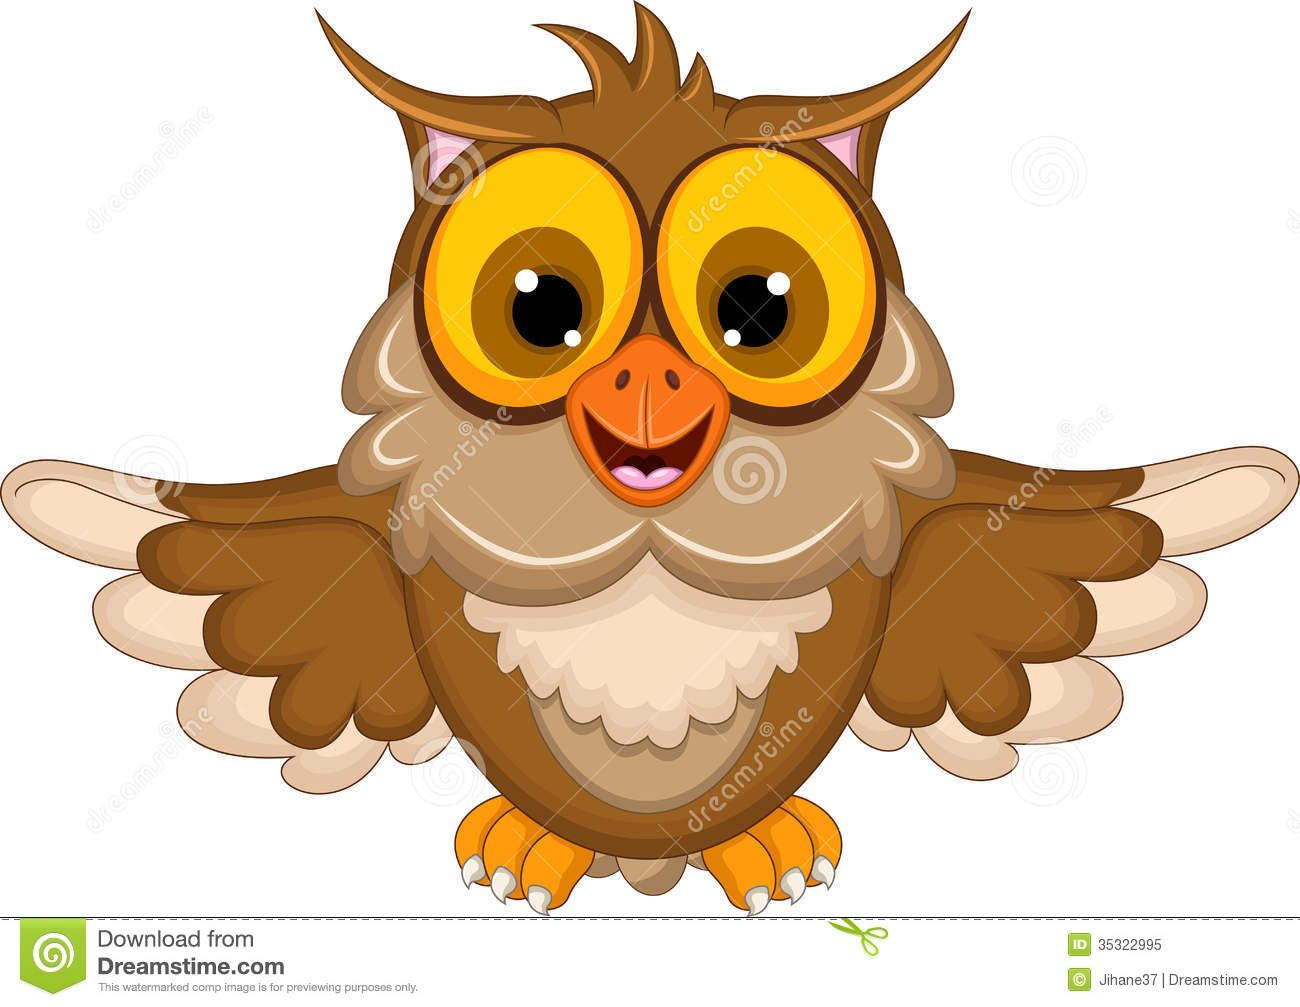 Cute owl cartoon waving illustration 1300 for A cartoon owl